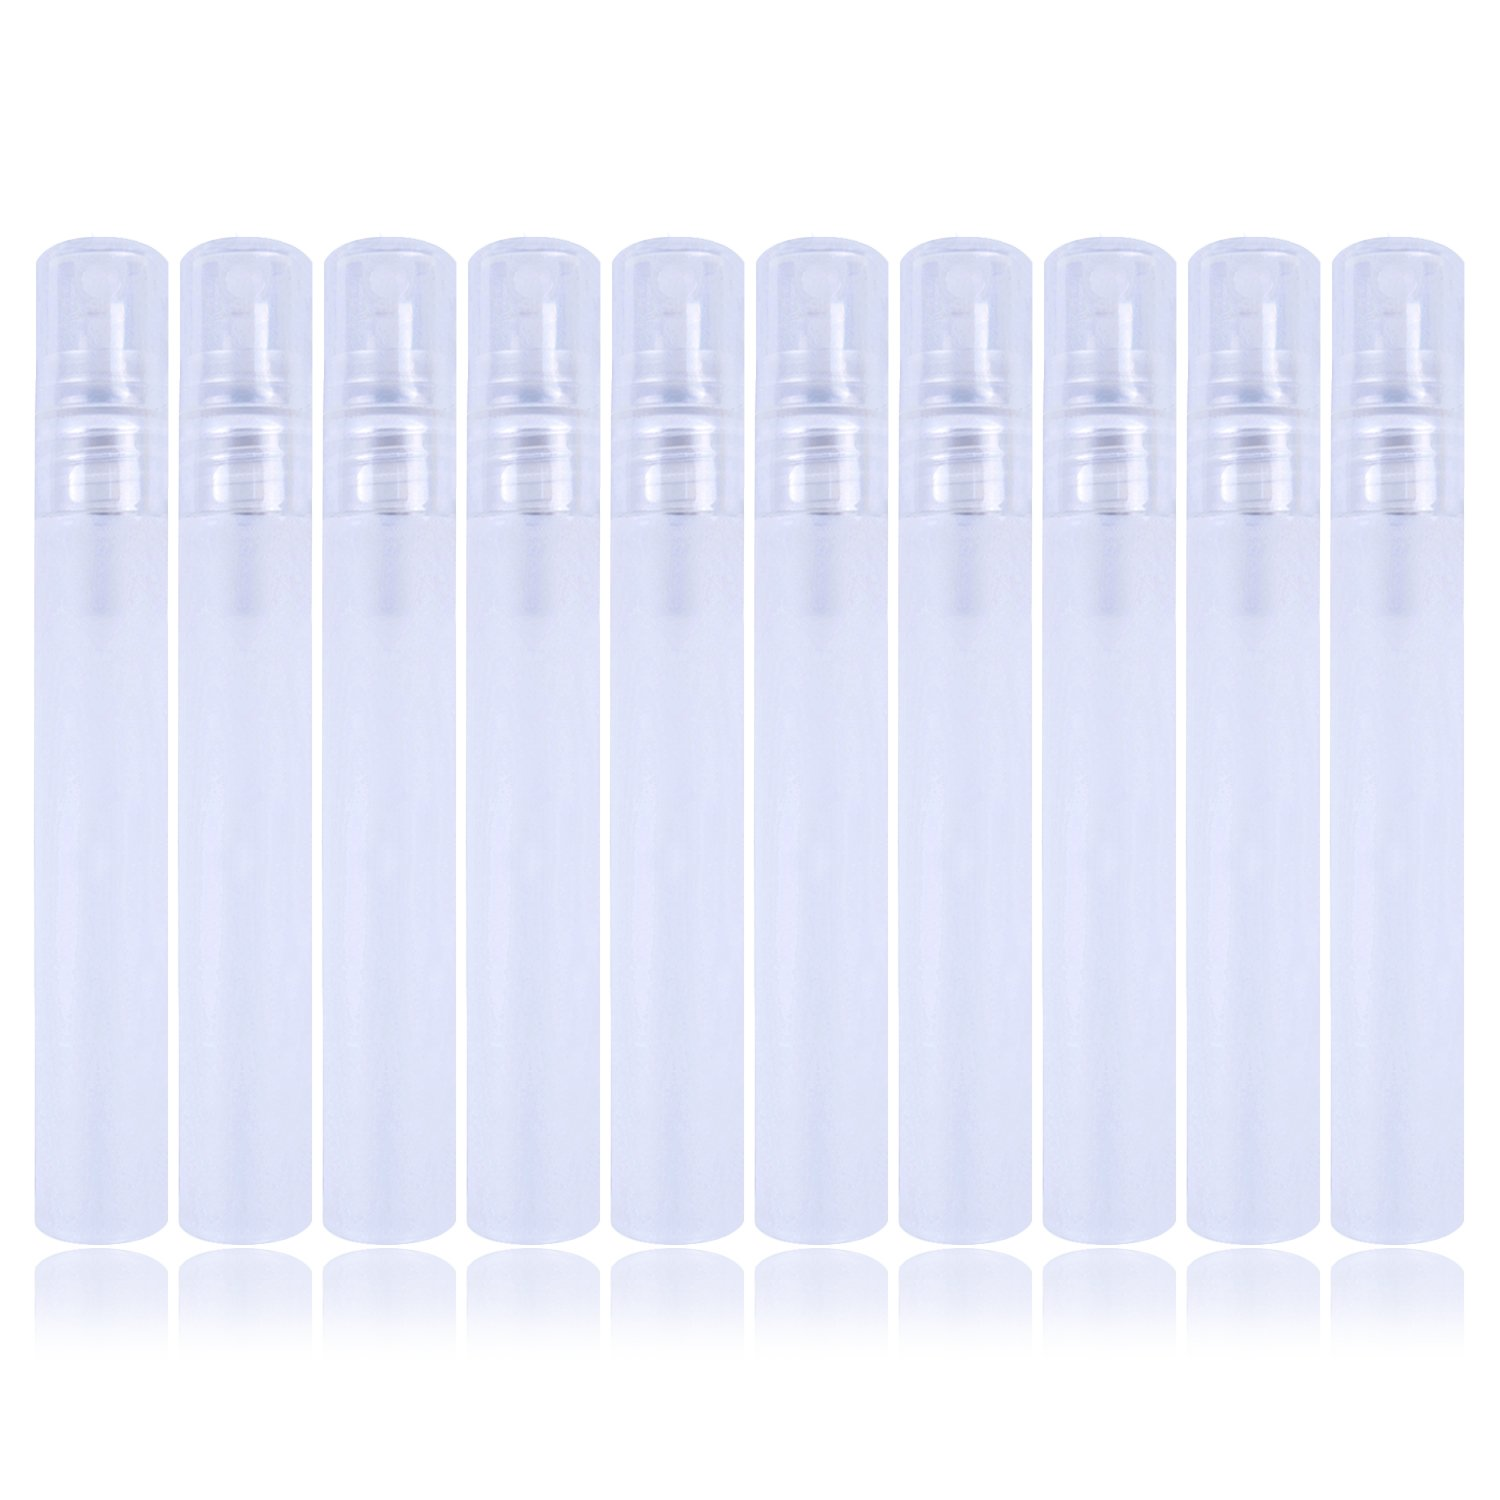 10 Pcs Plastic Bottle Spray Mini Empty Sample Bottles Atomizer Pump for Perfume, Toner and etc, 10ml, Clear White